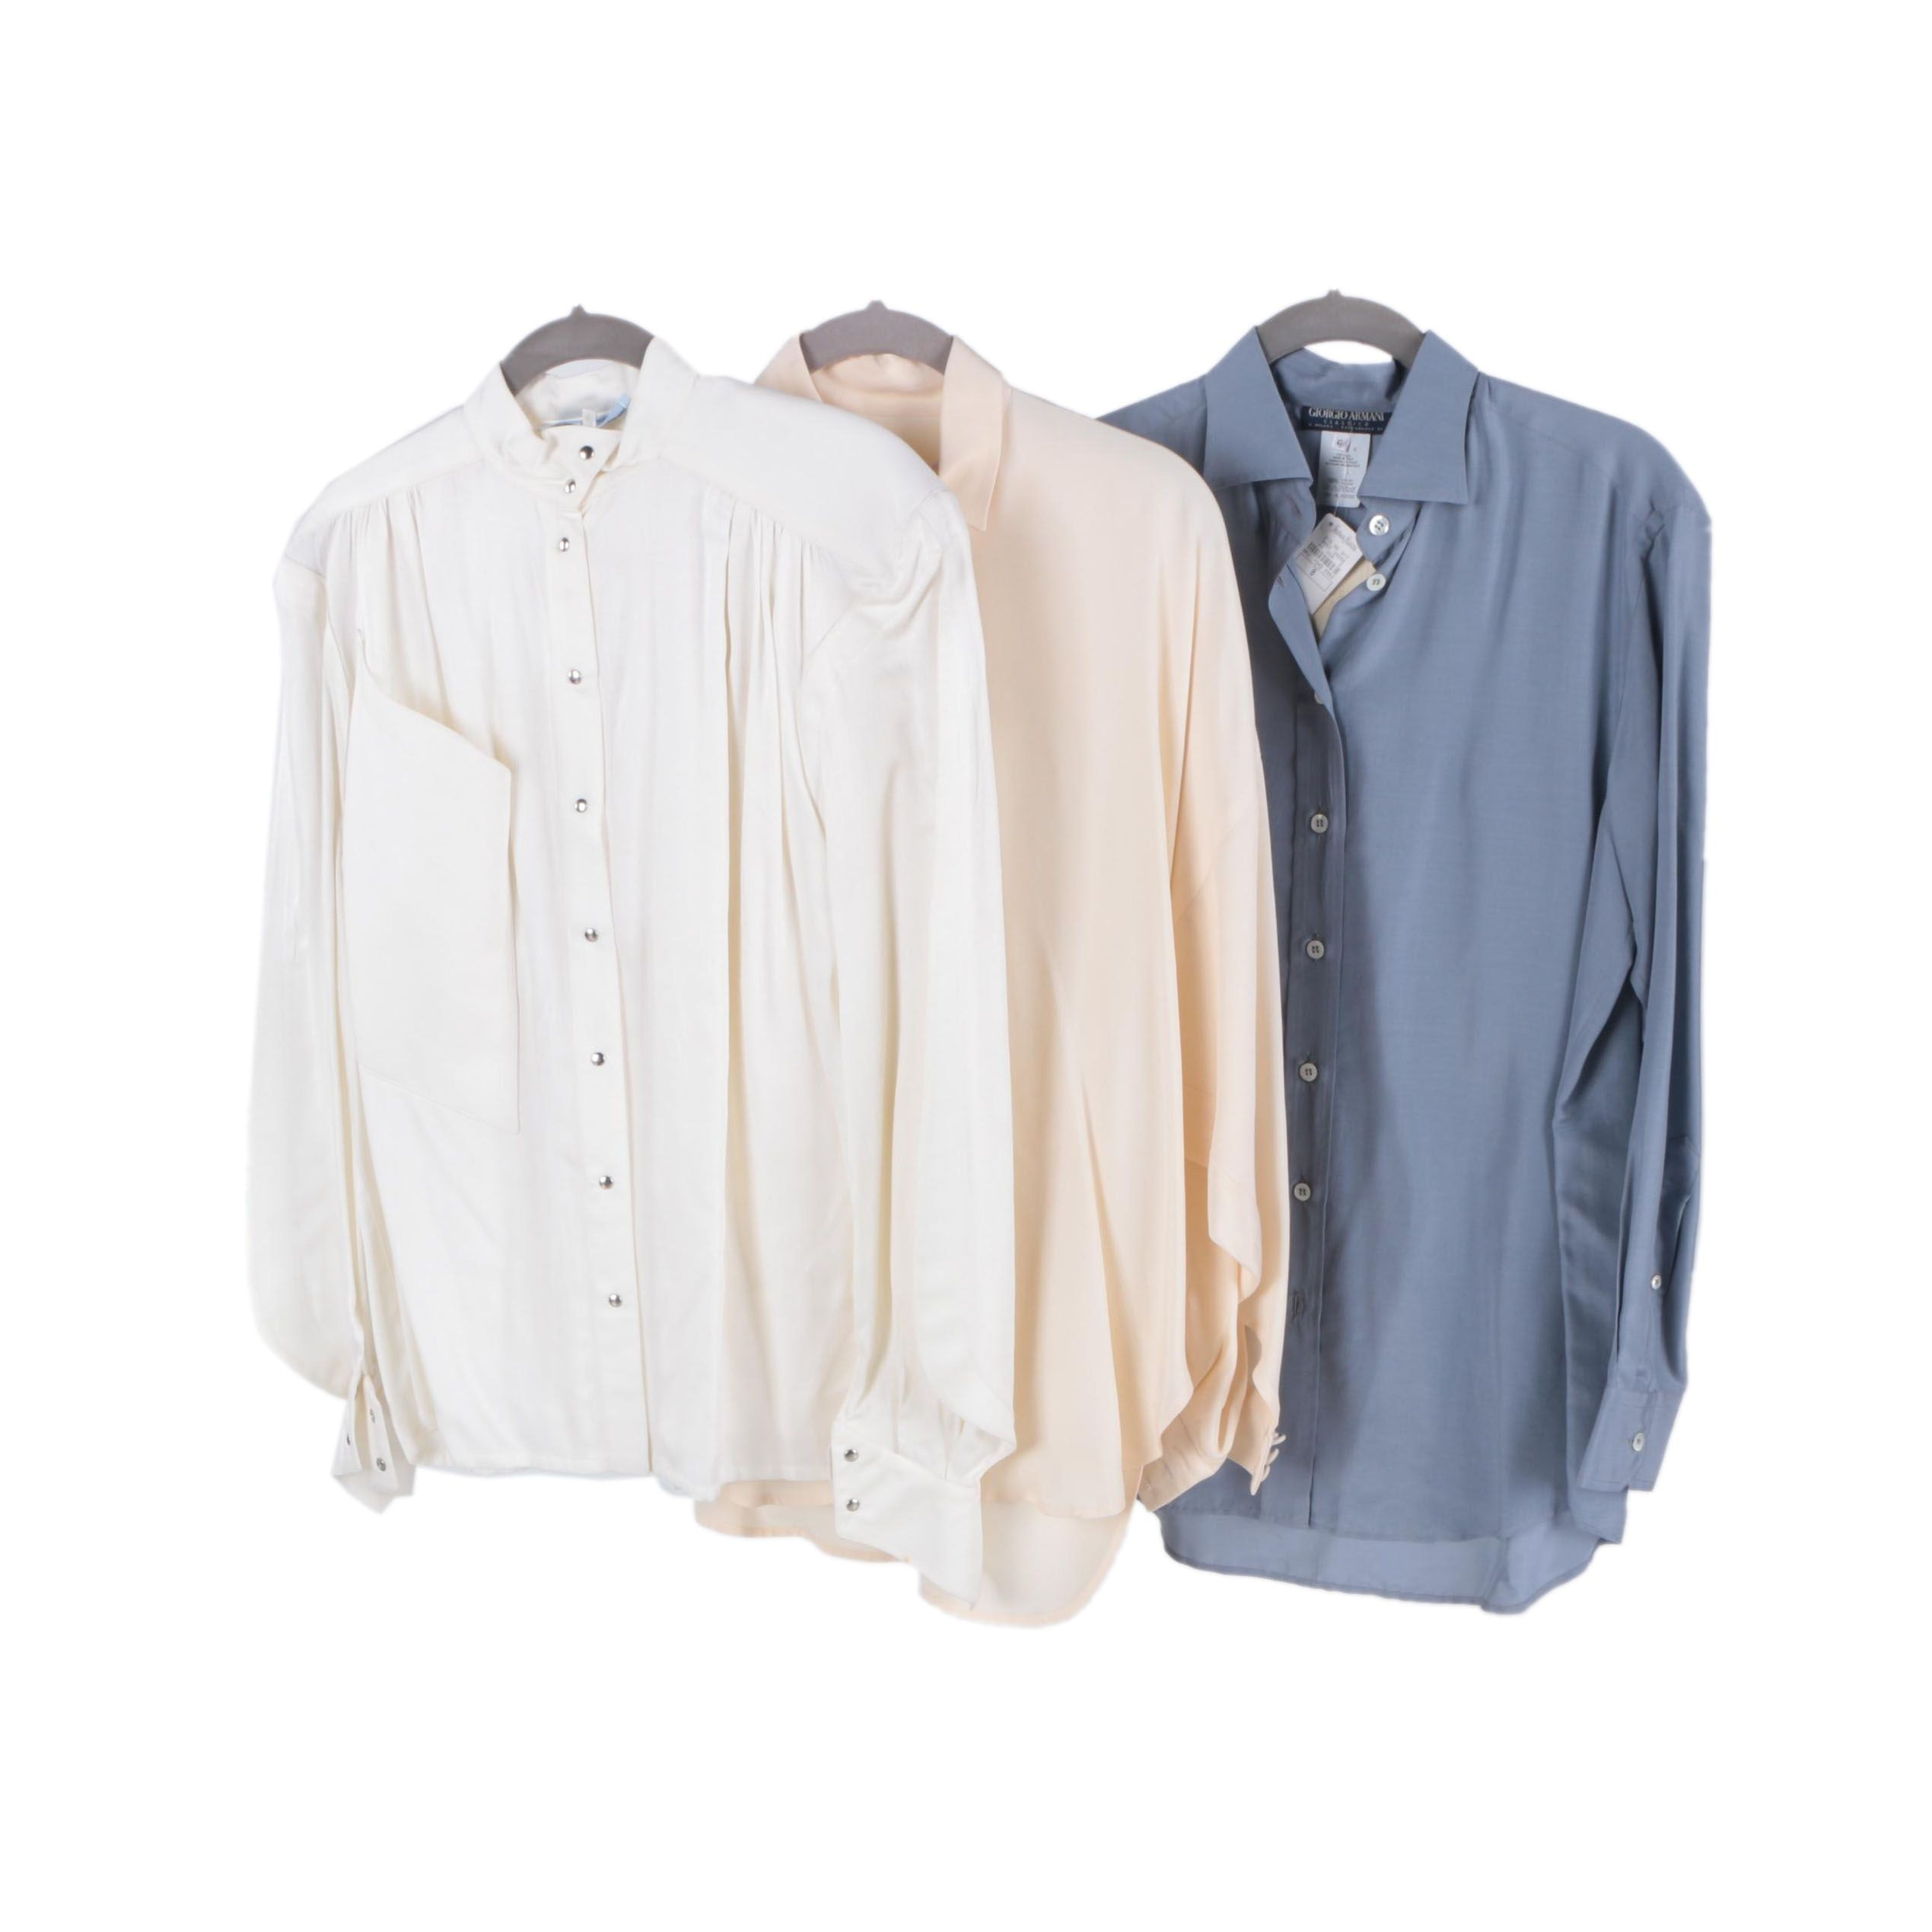 Assortment of Shirts Including Armani and Thierry Mugler